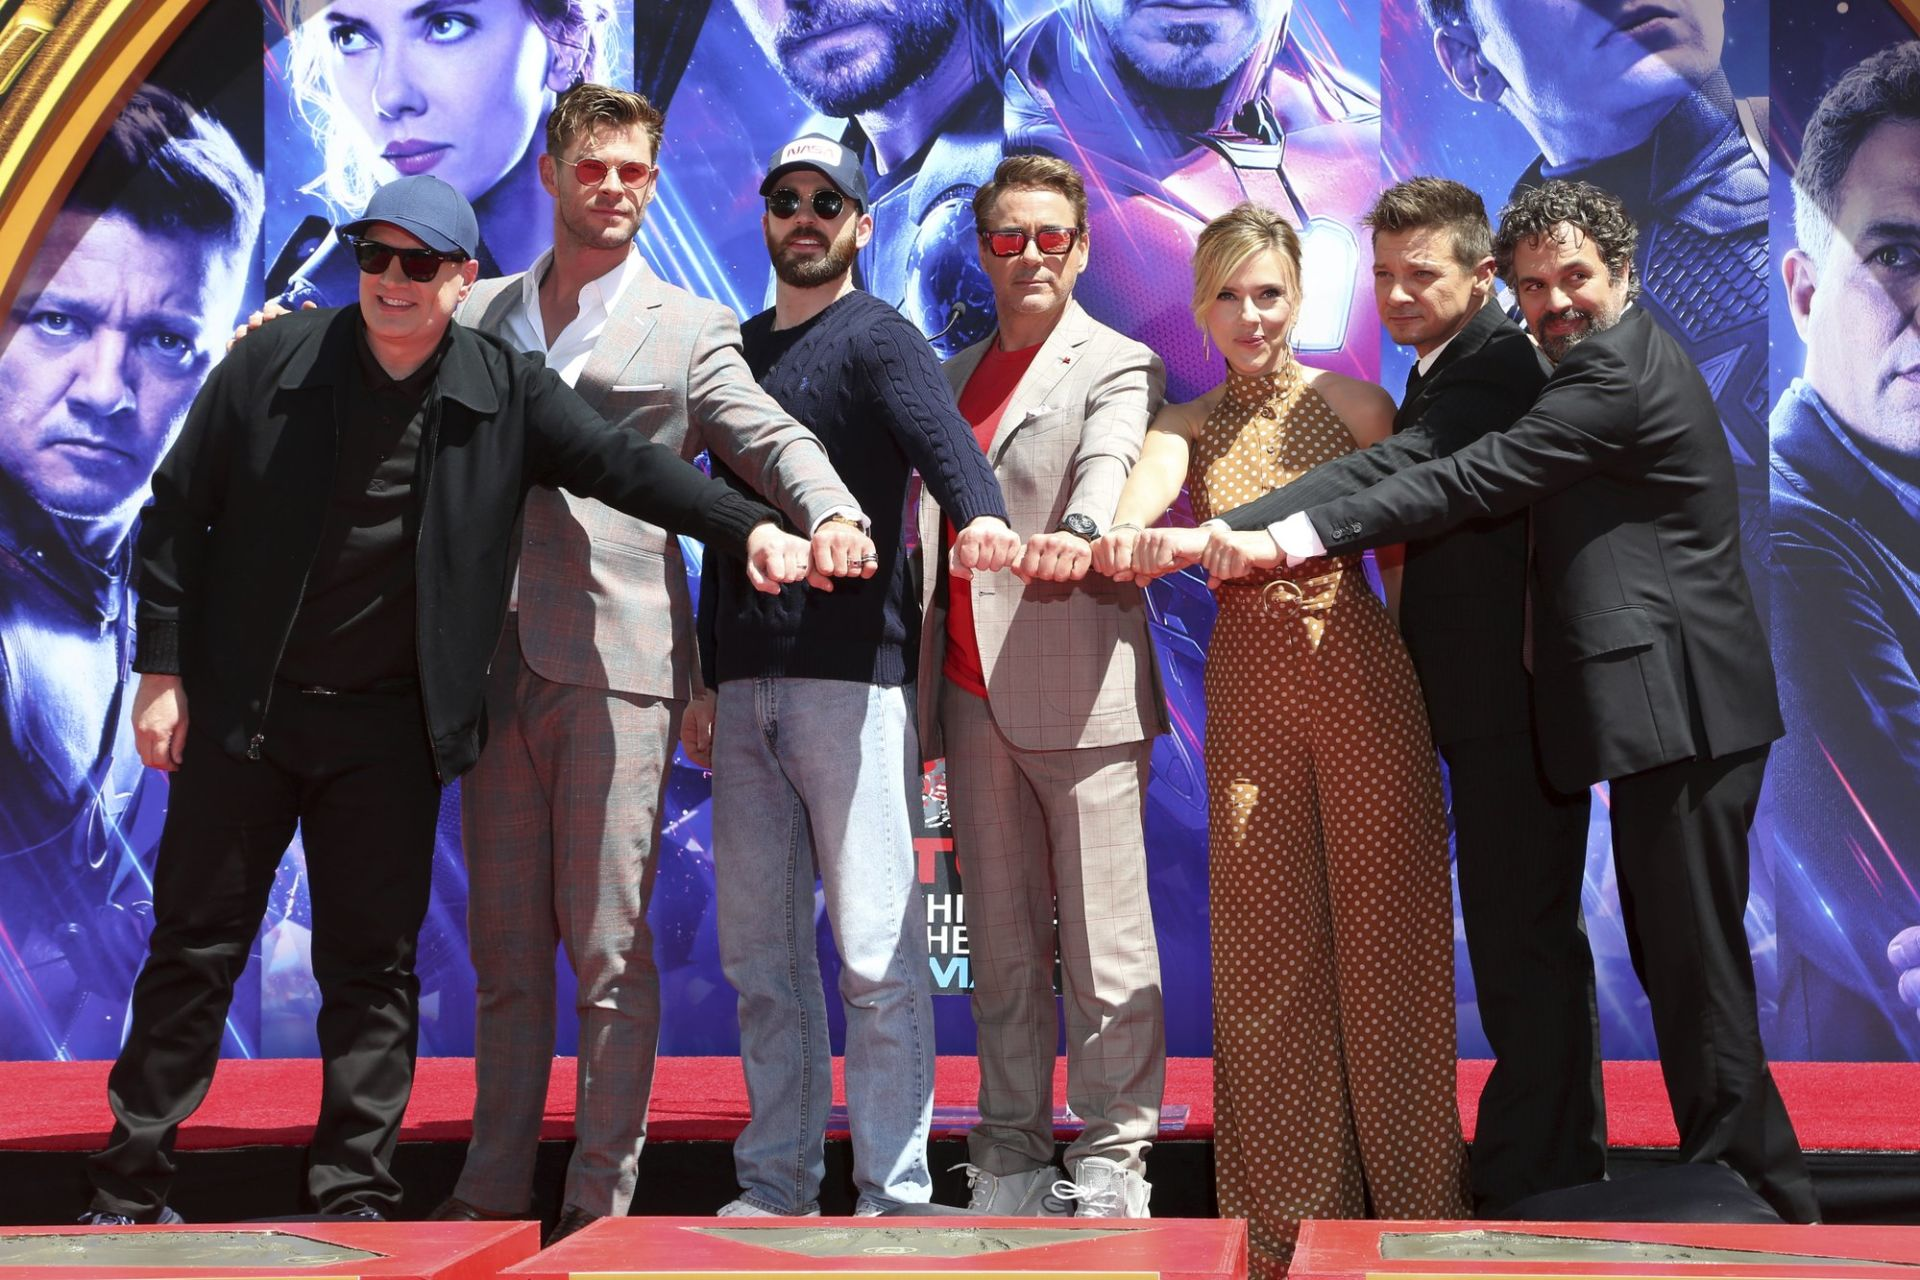 Avengers: Endgame' Shatters Records With $1.2 Billion Opening